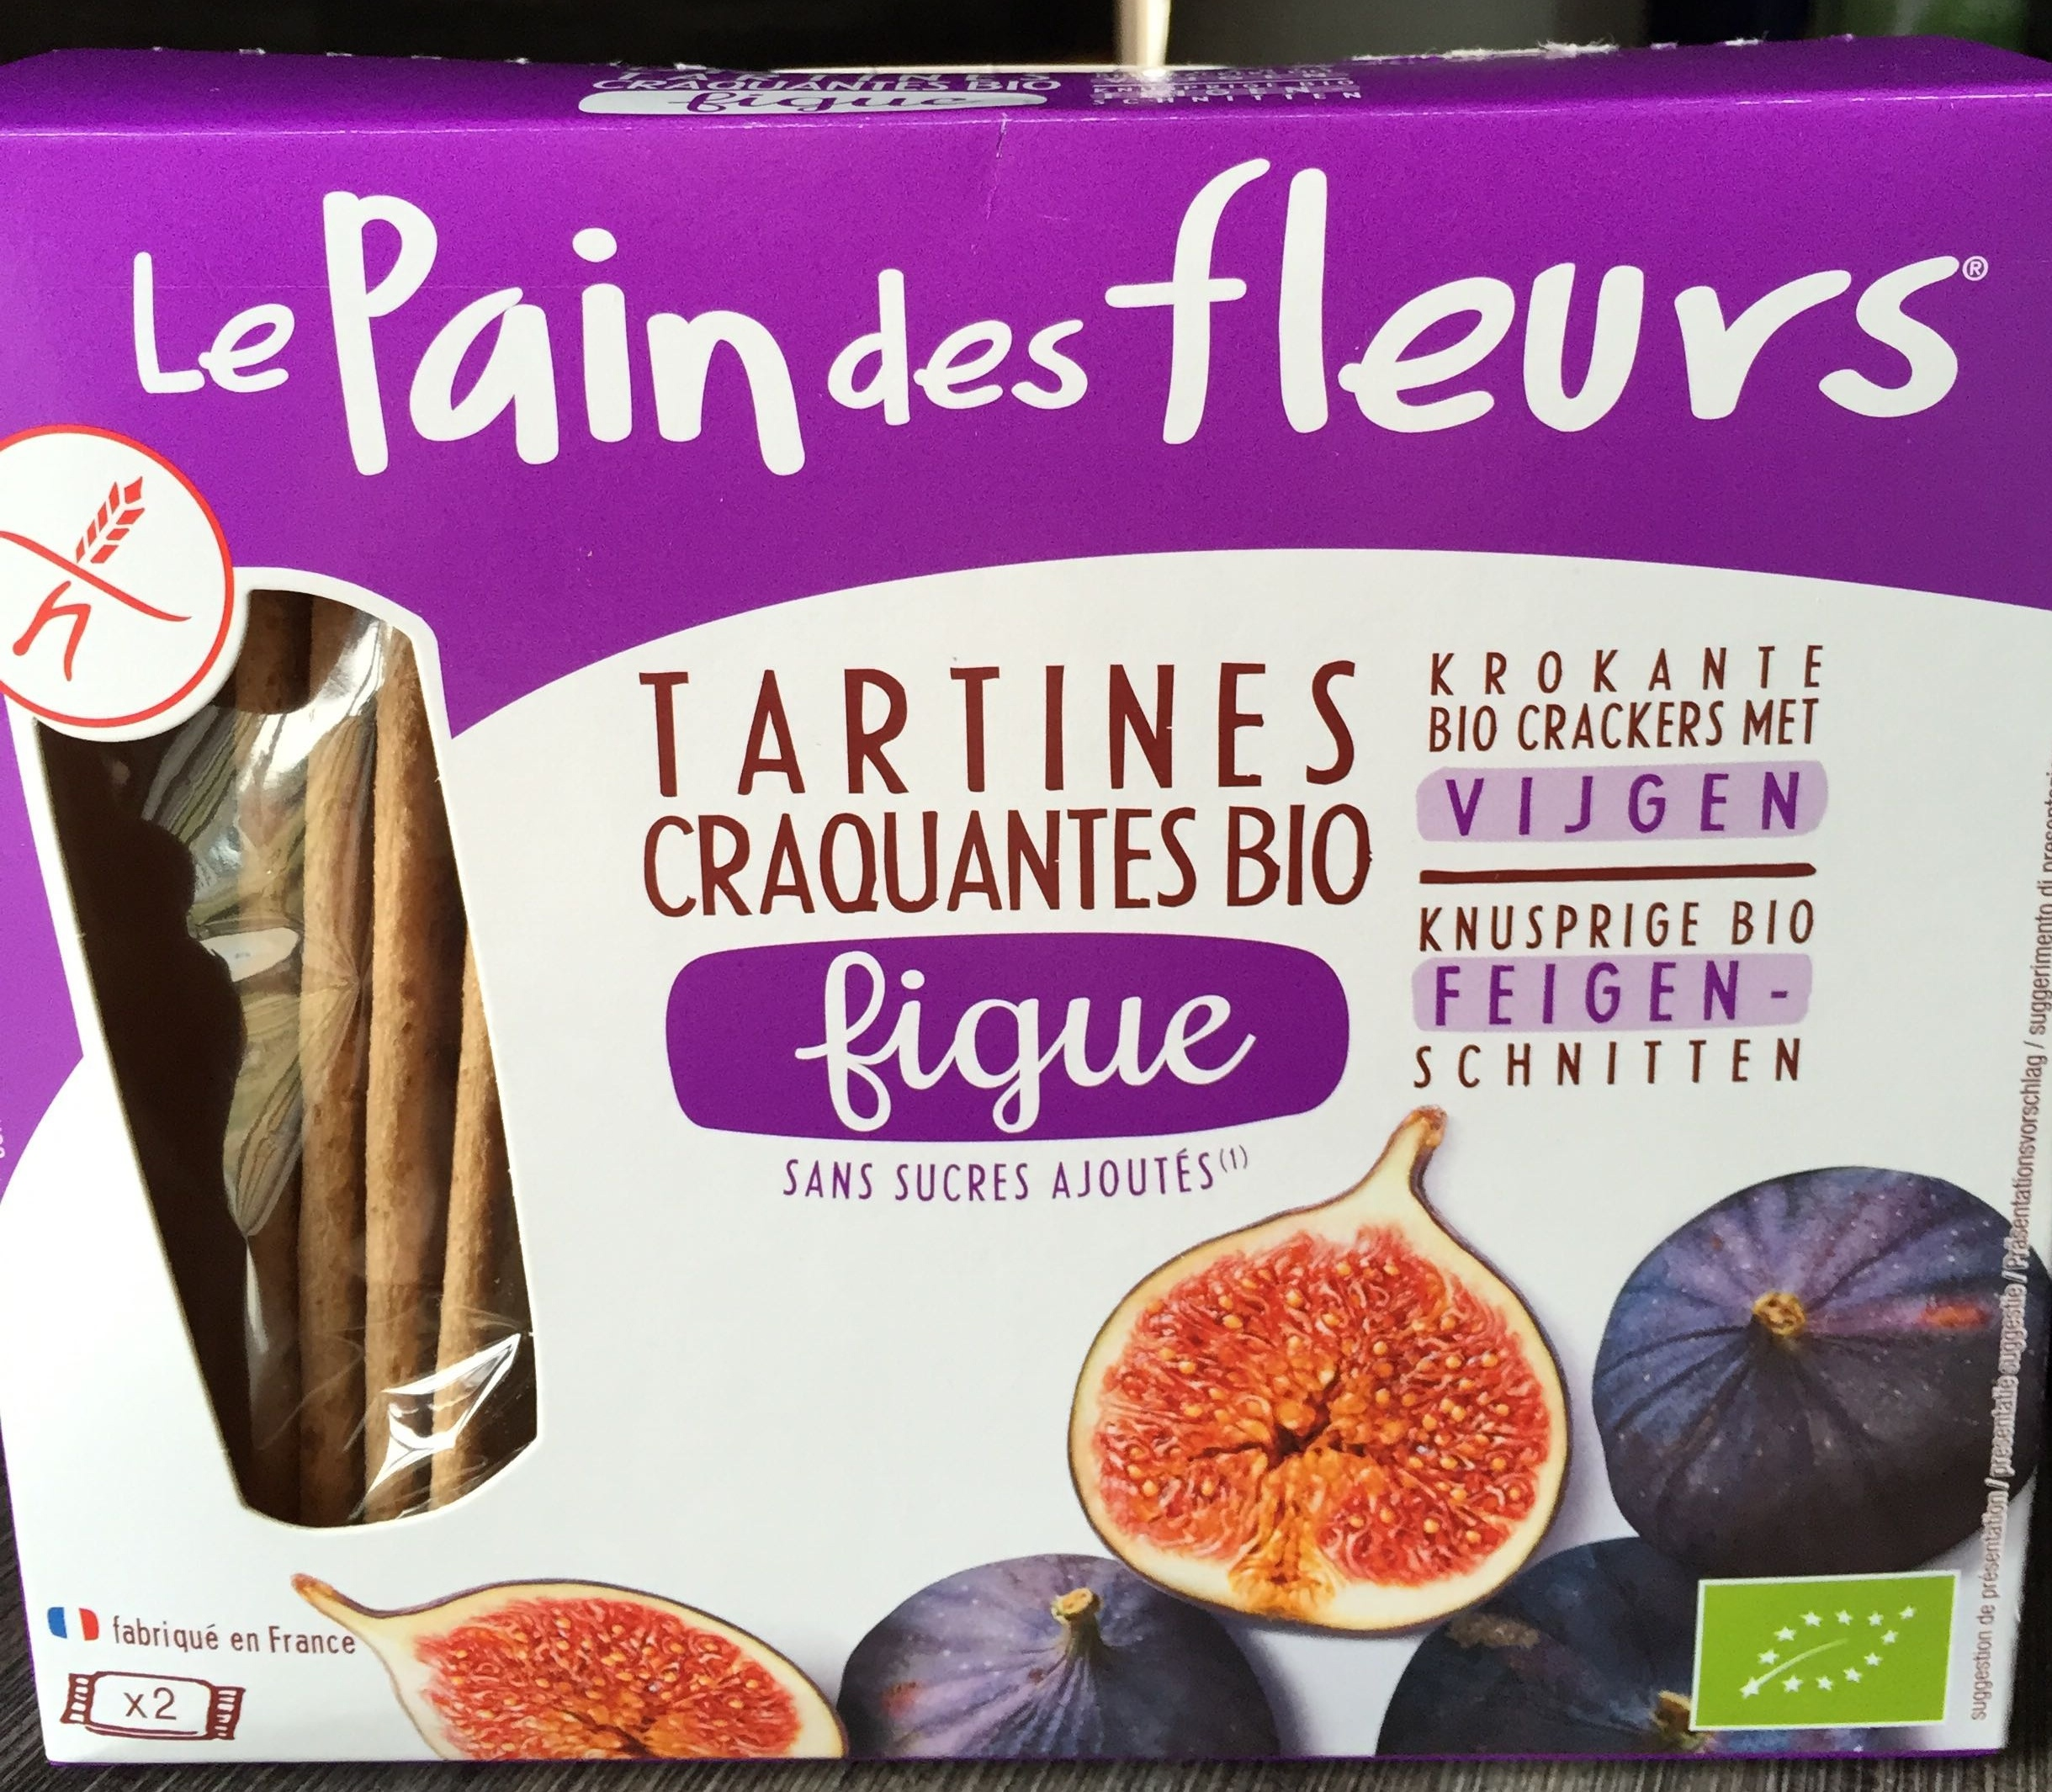 Tartines craquantes bio figue - Product - fr